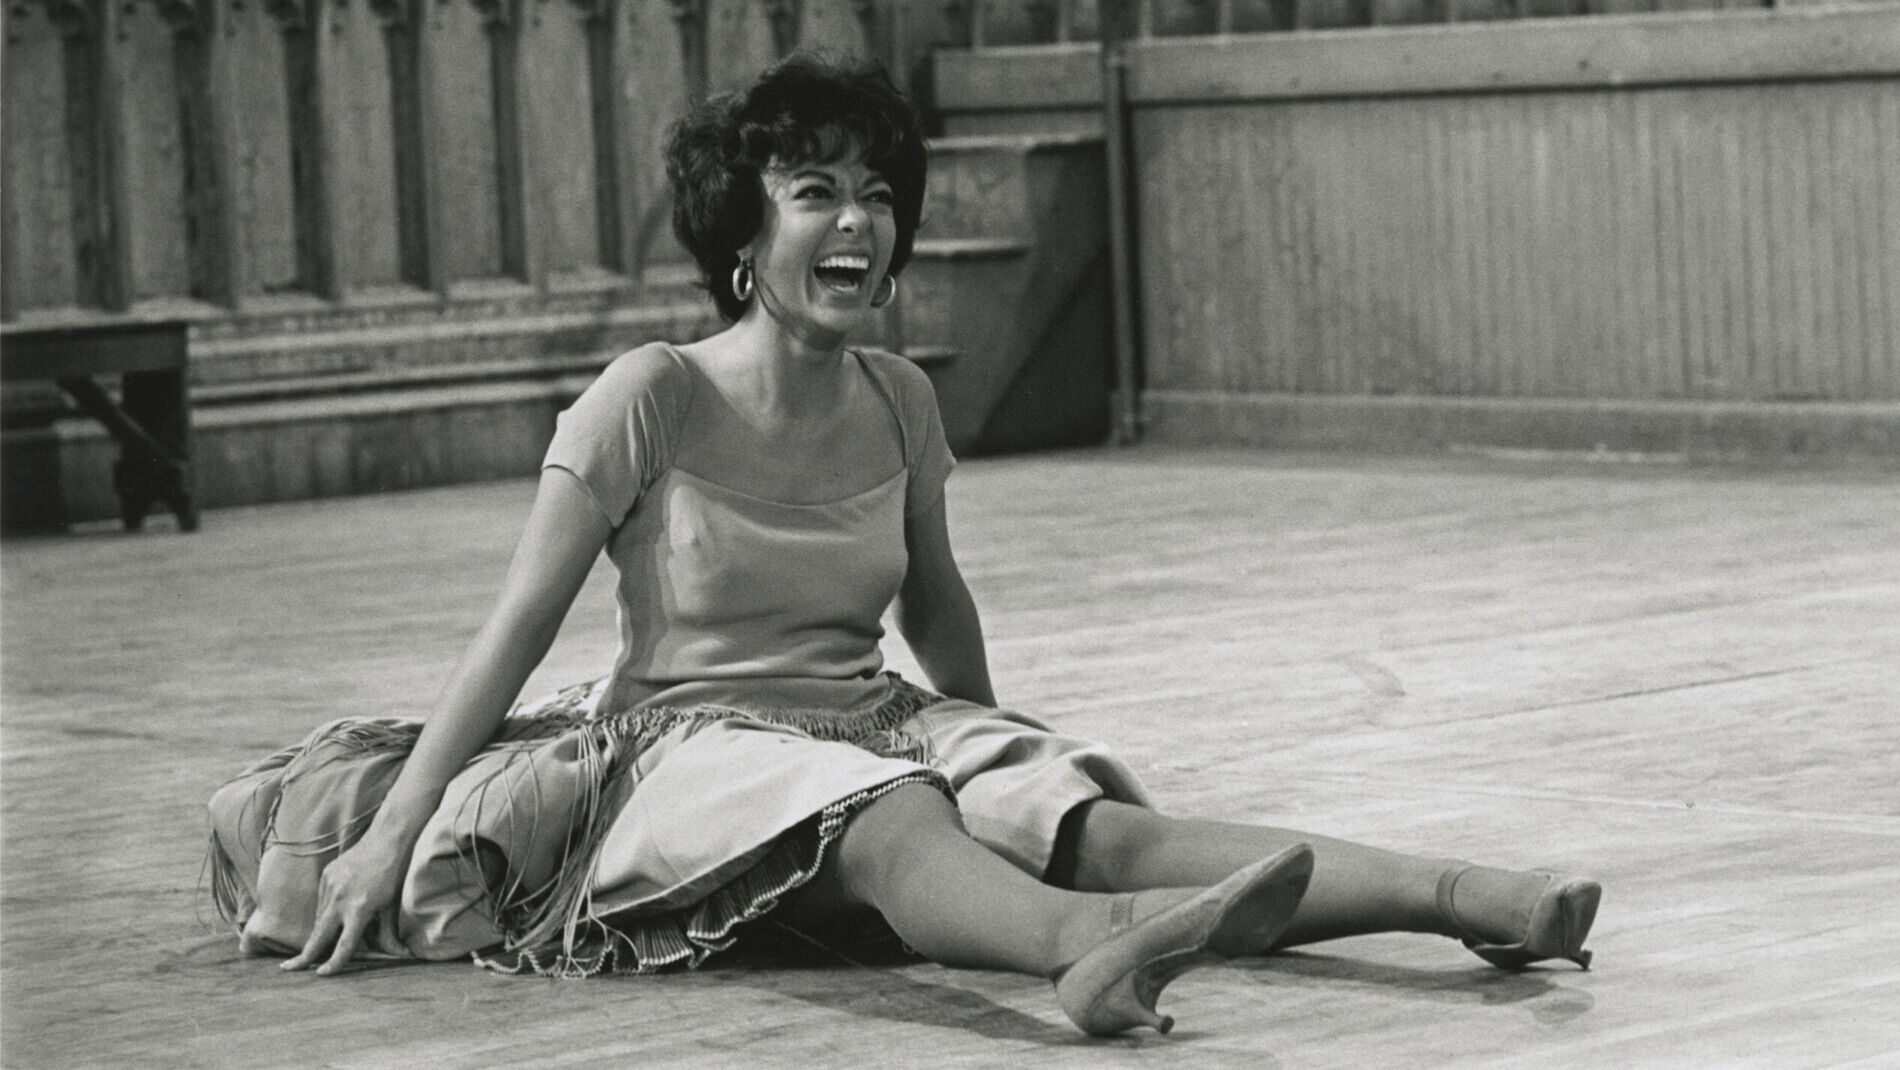 A woman with dark hair and wearing dress sits on floor with her legs stretched in front of her. She is laughing.